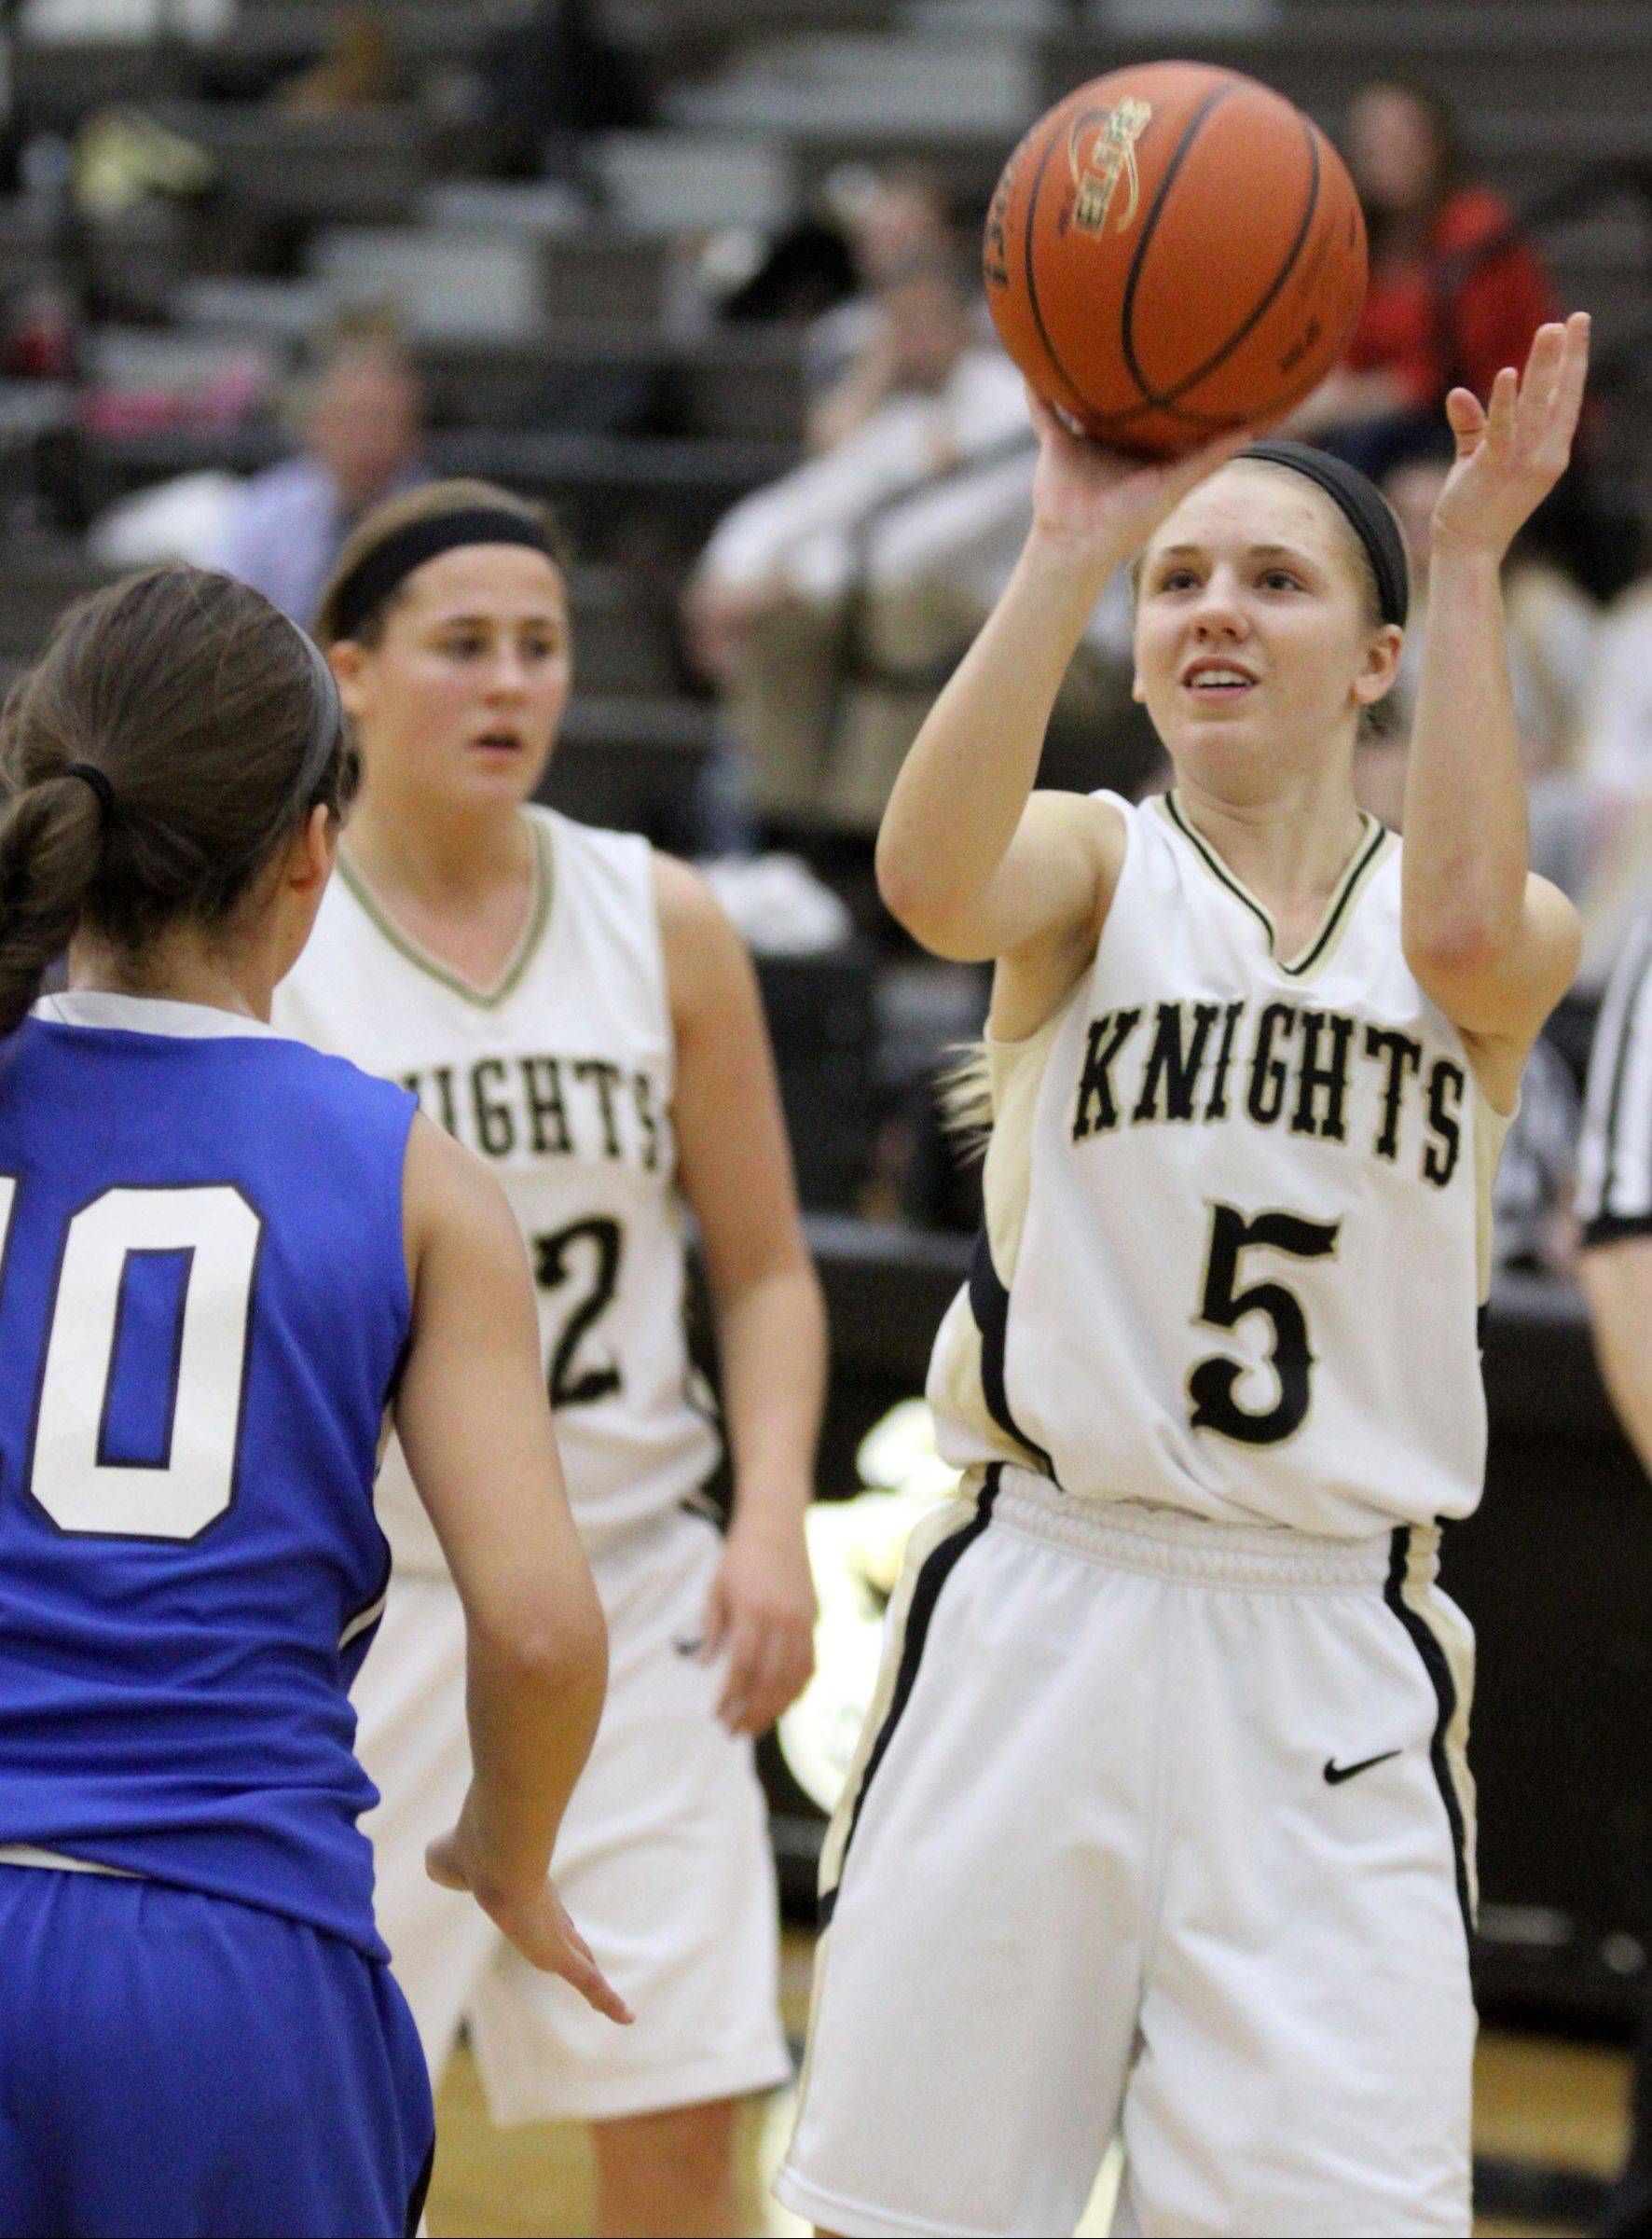 Grayslake North's Kendall Detweiler shoots against Woodstock in Grayslake on Friday.